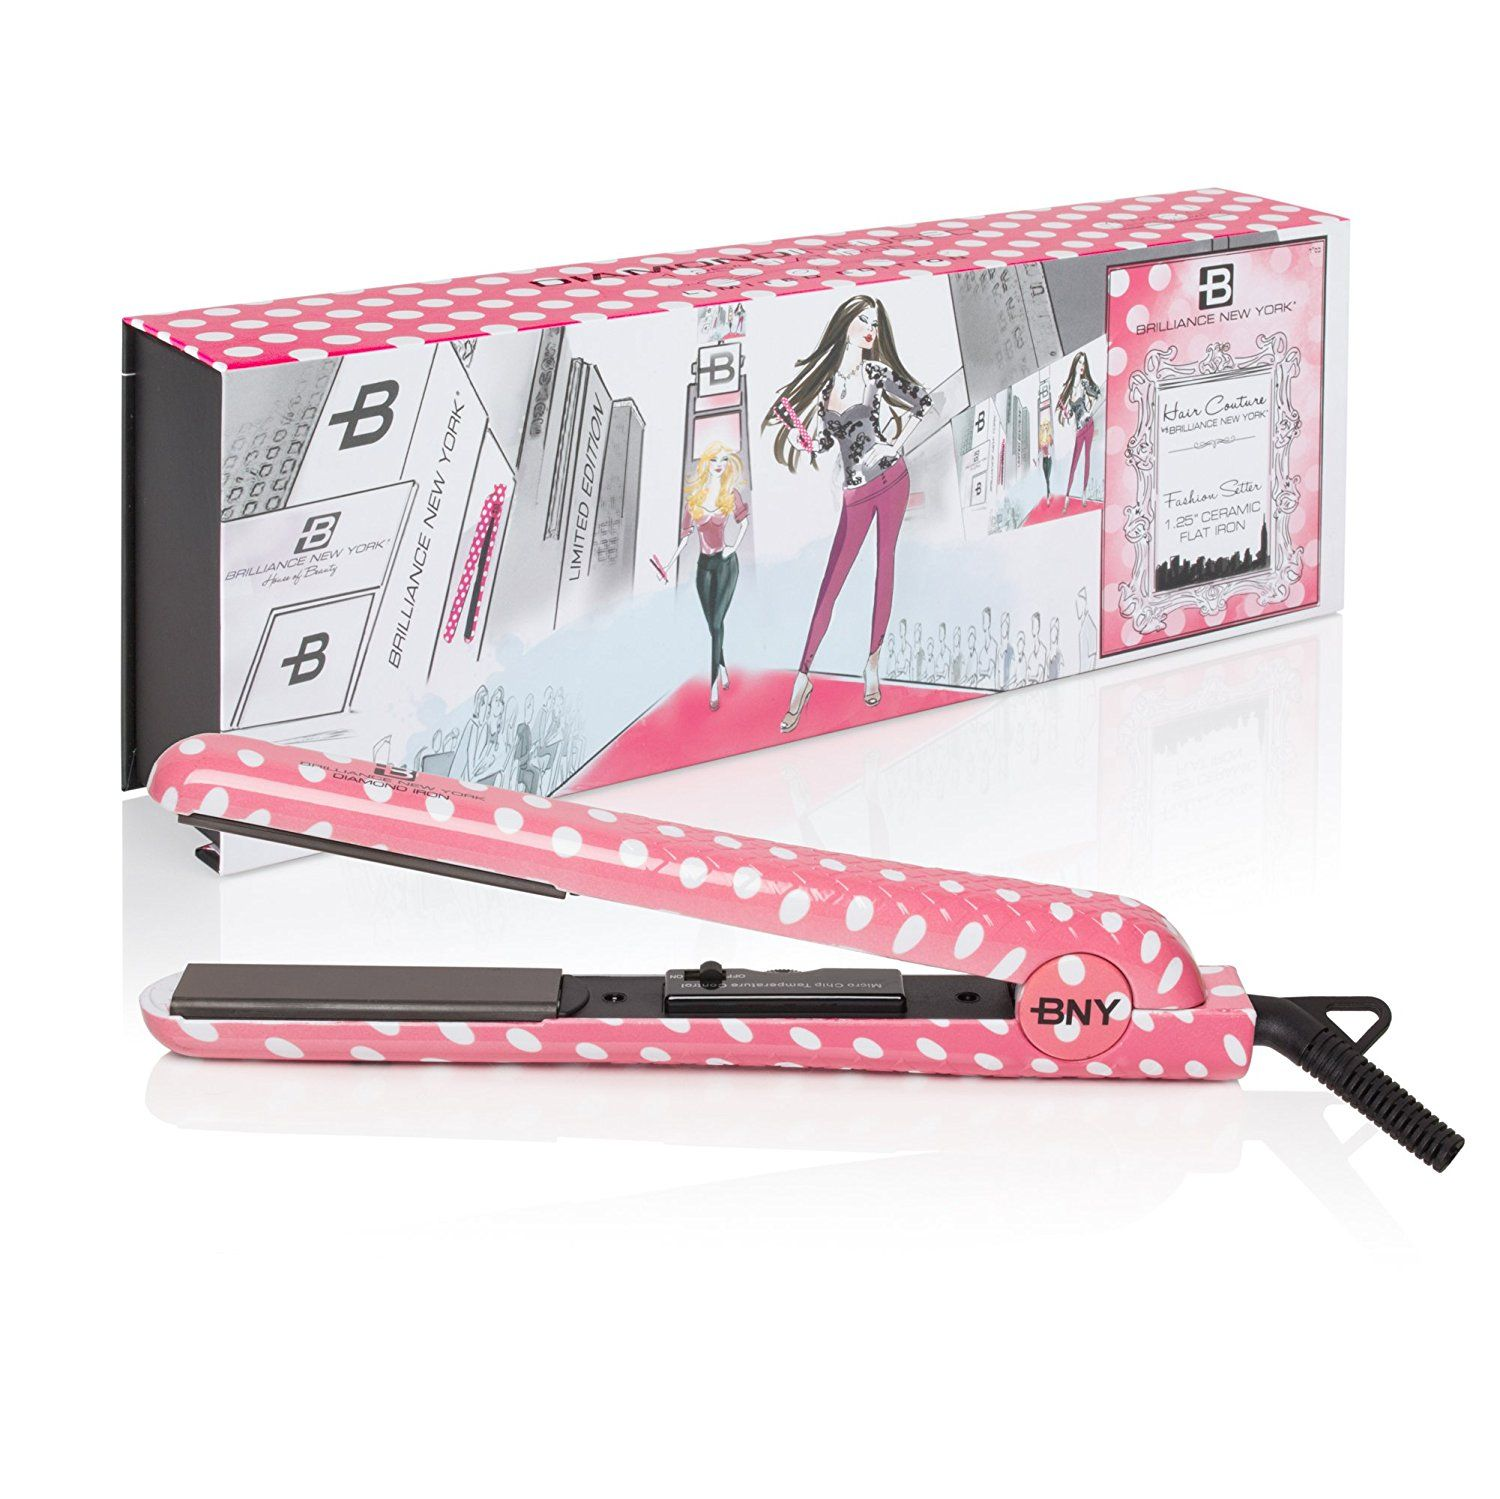 New Hot Tools By Brilliance York 1 25 Flat Iron Hair Straightener Curl